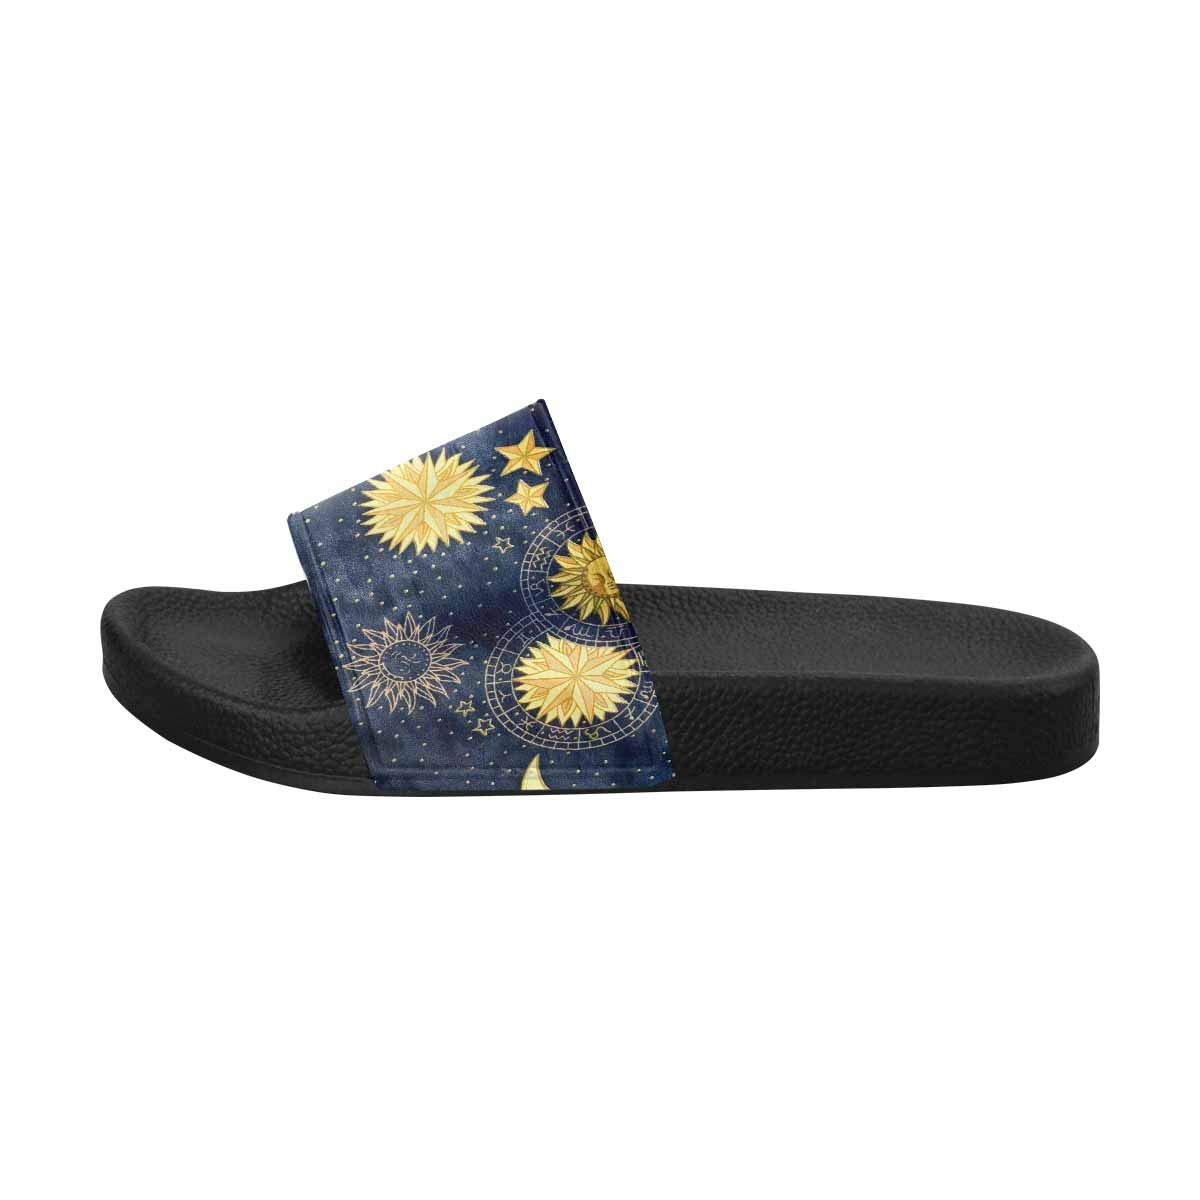 US6~US12 INTERESTPRINT Womens Slide Sandals Water Shoes for Beach and Pool